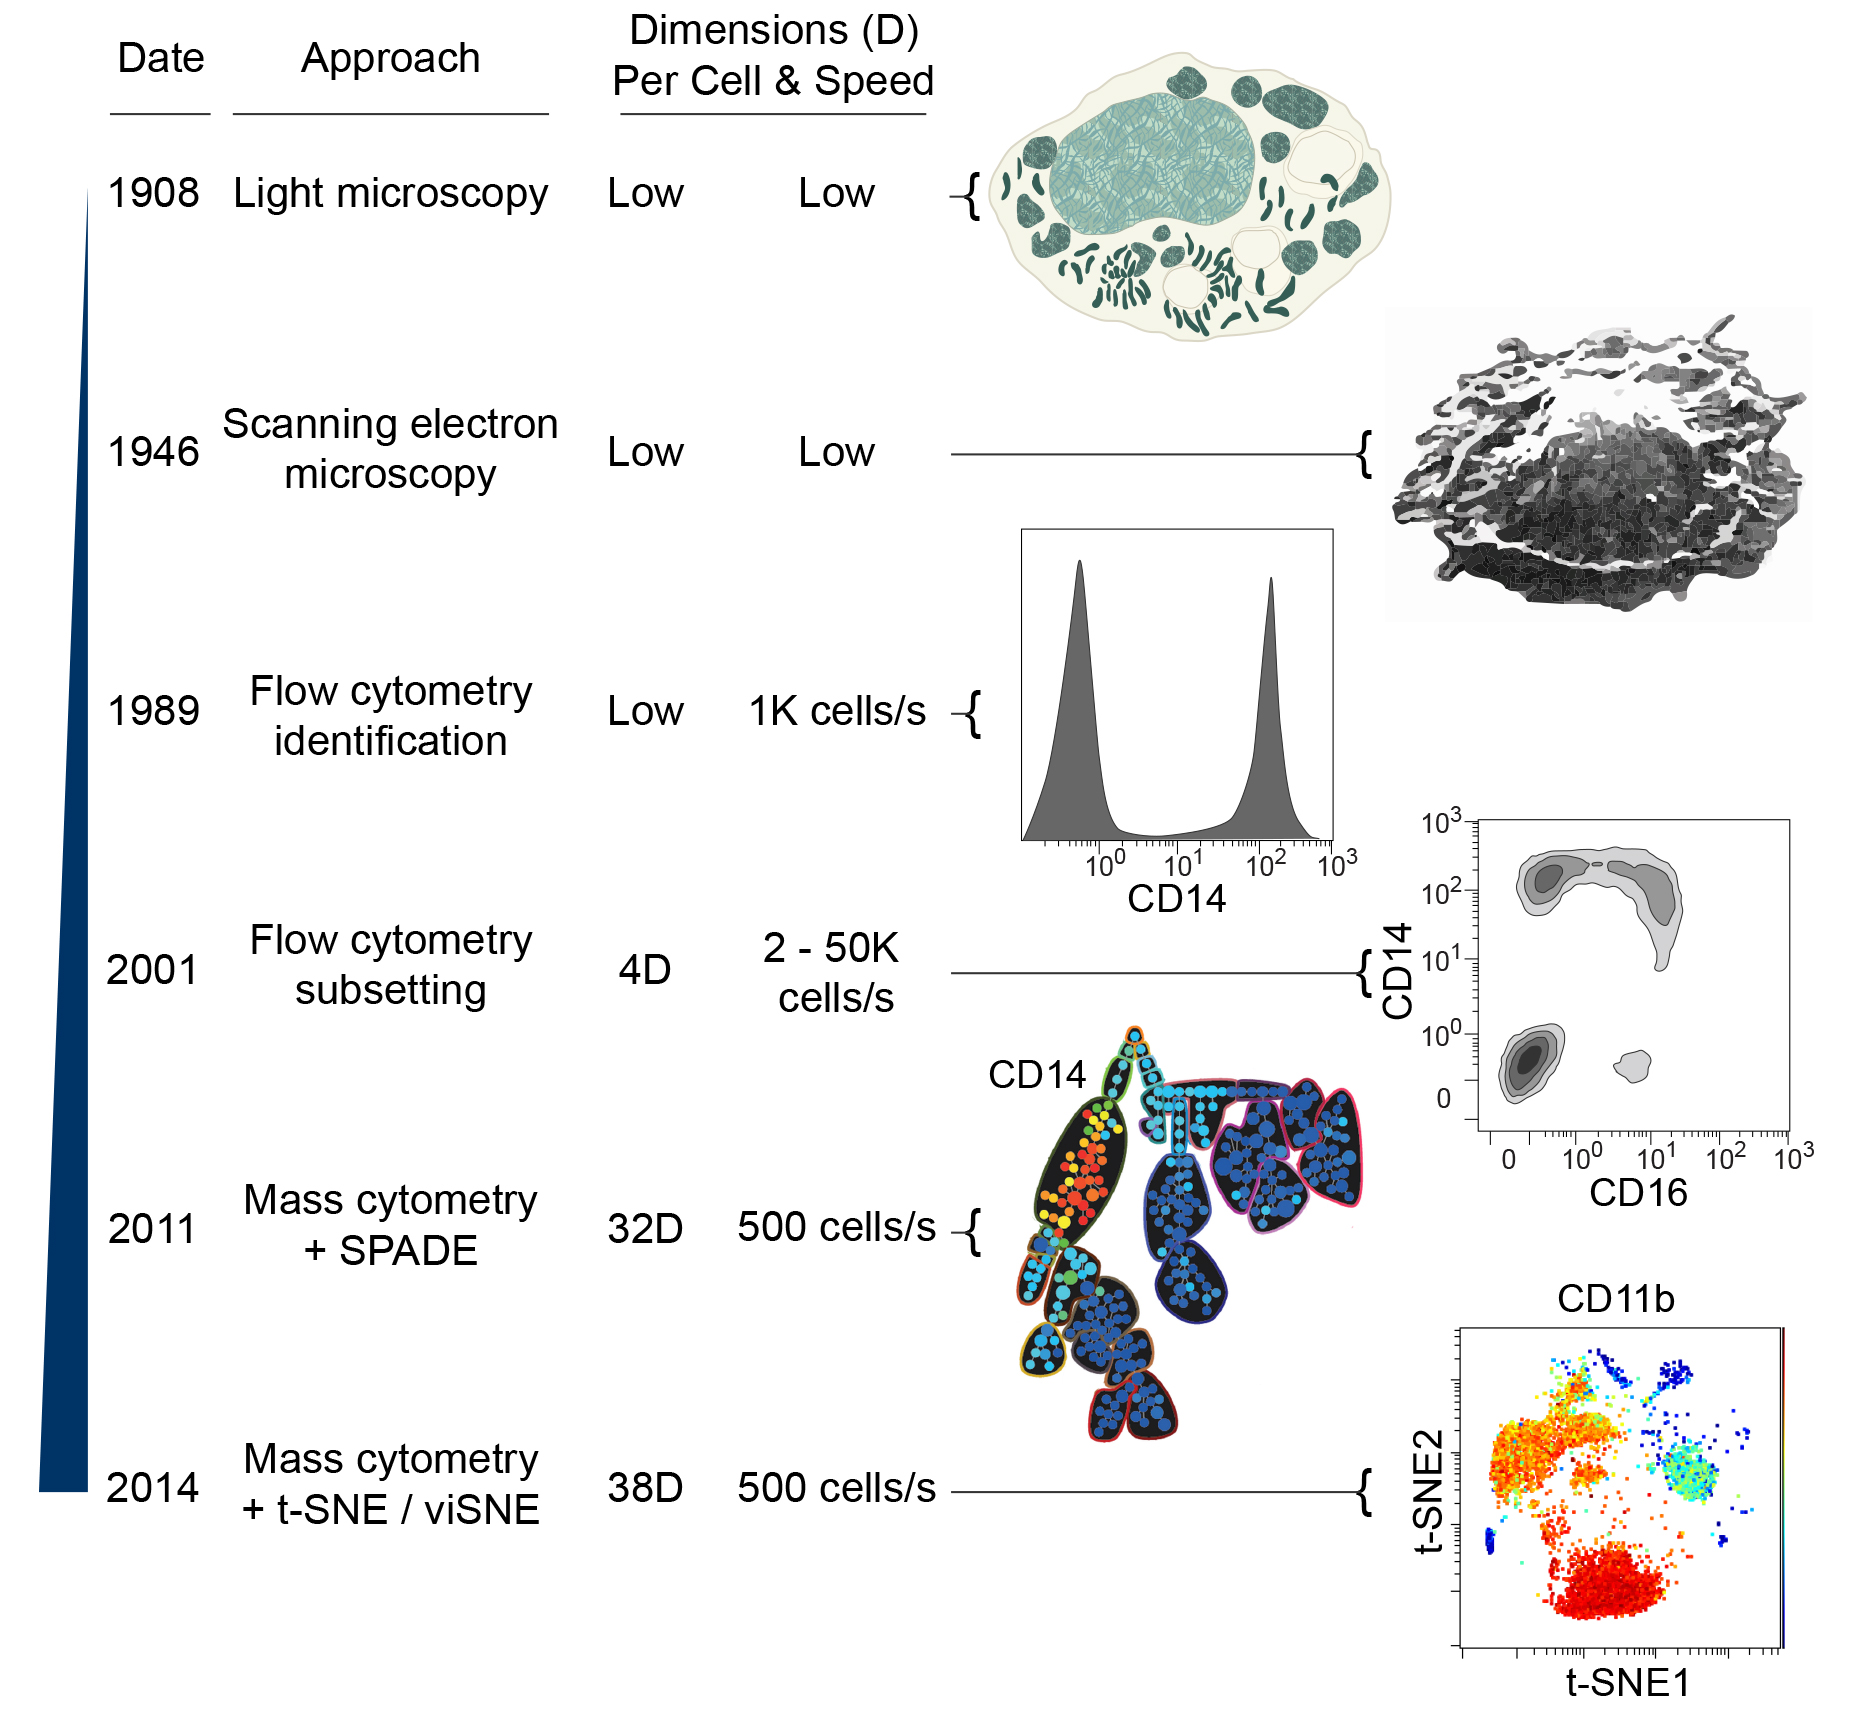 Roussel et al - 2016 Handbook of Human Innate Immunity - Dissecting Complex Cellular Systems with High Dimensional Single Cell Mass Cytometry